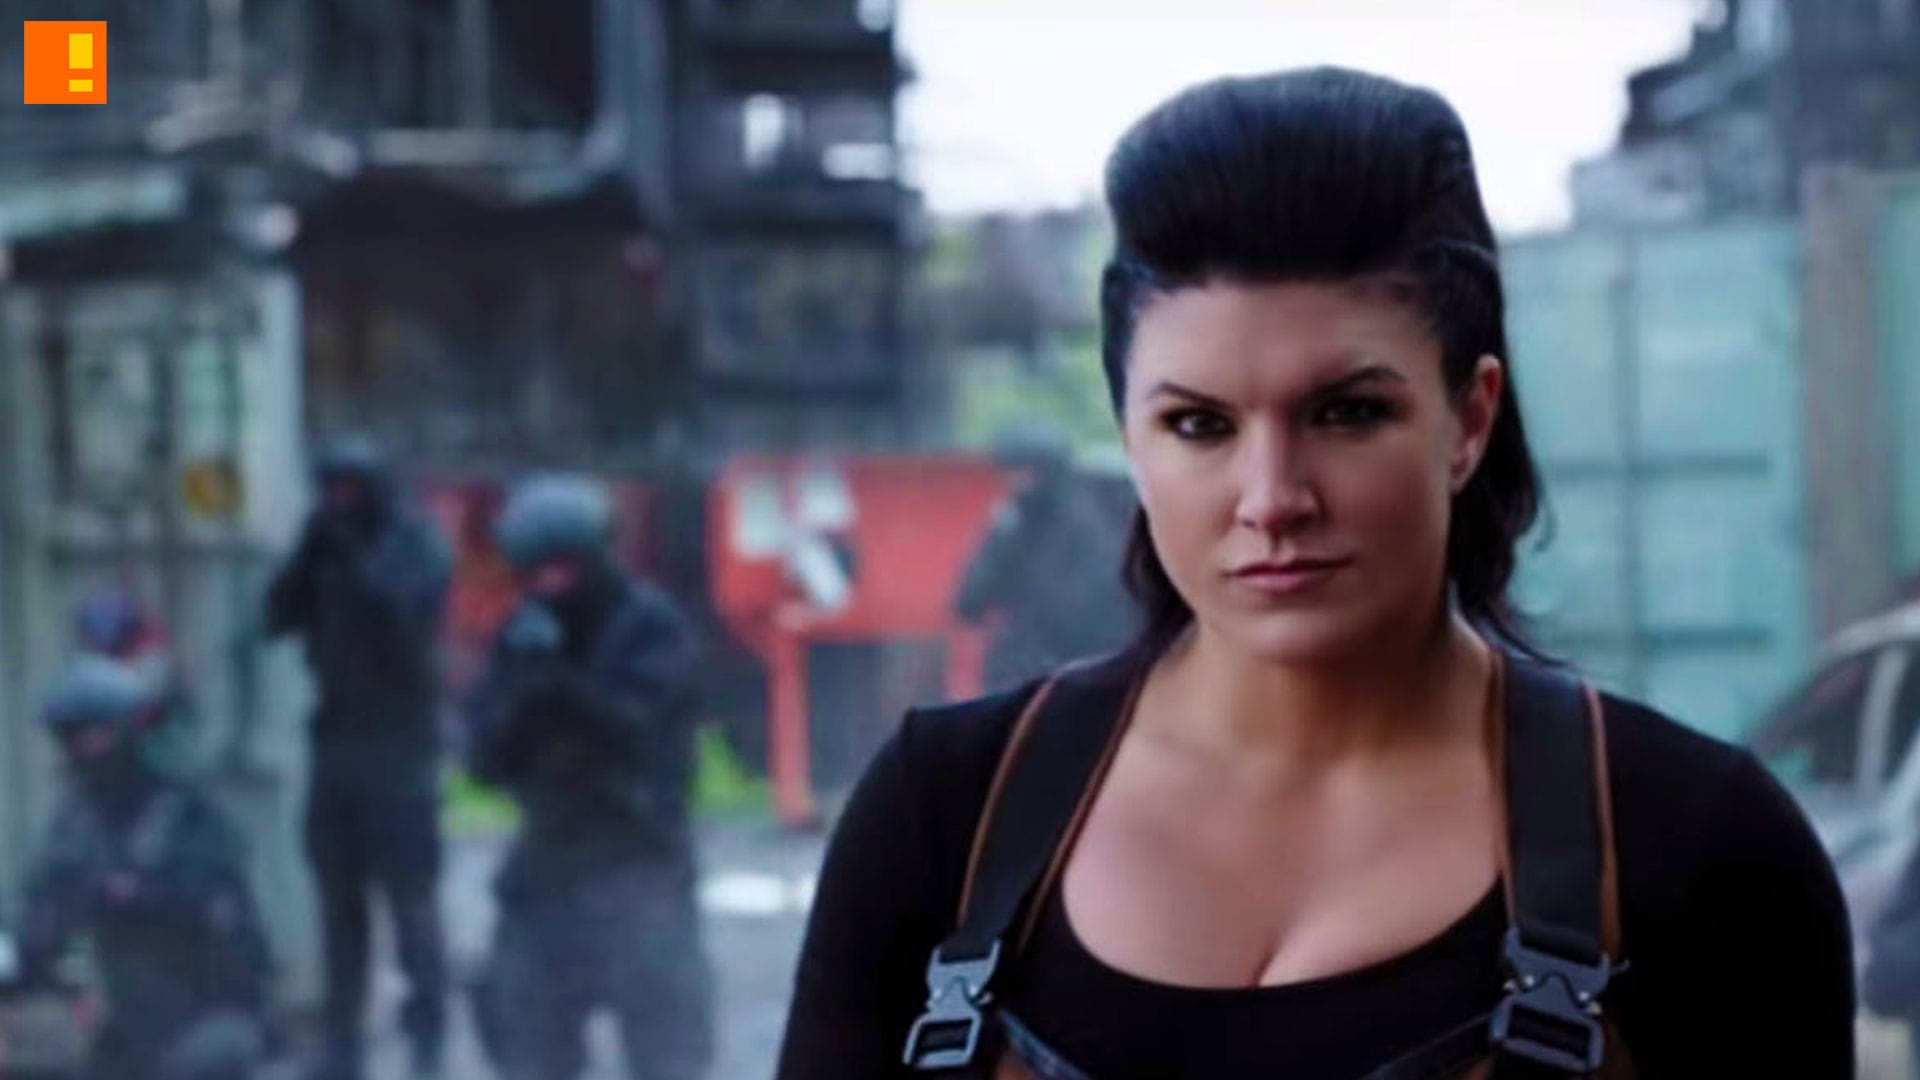 49 Hottest Gina Carano Bikini Pictures Show Off Her Amazing